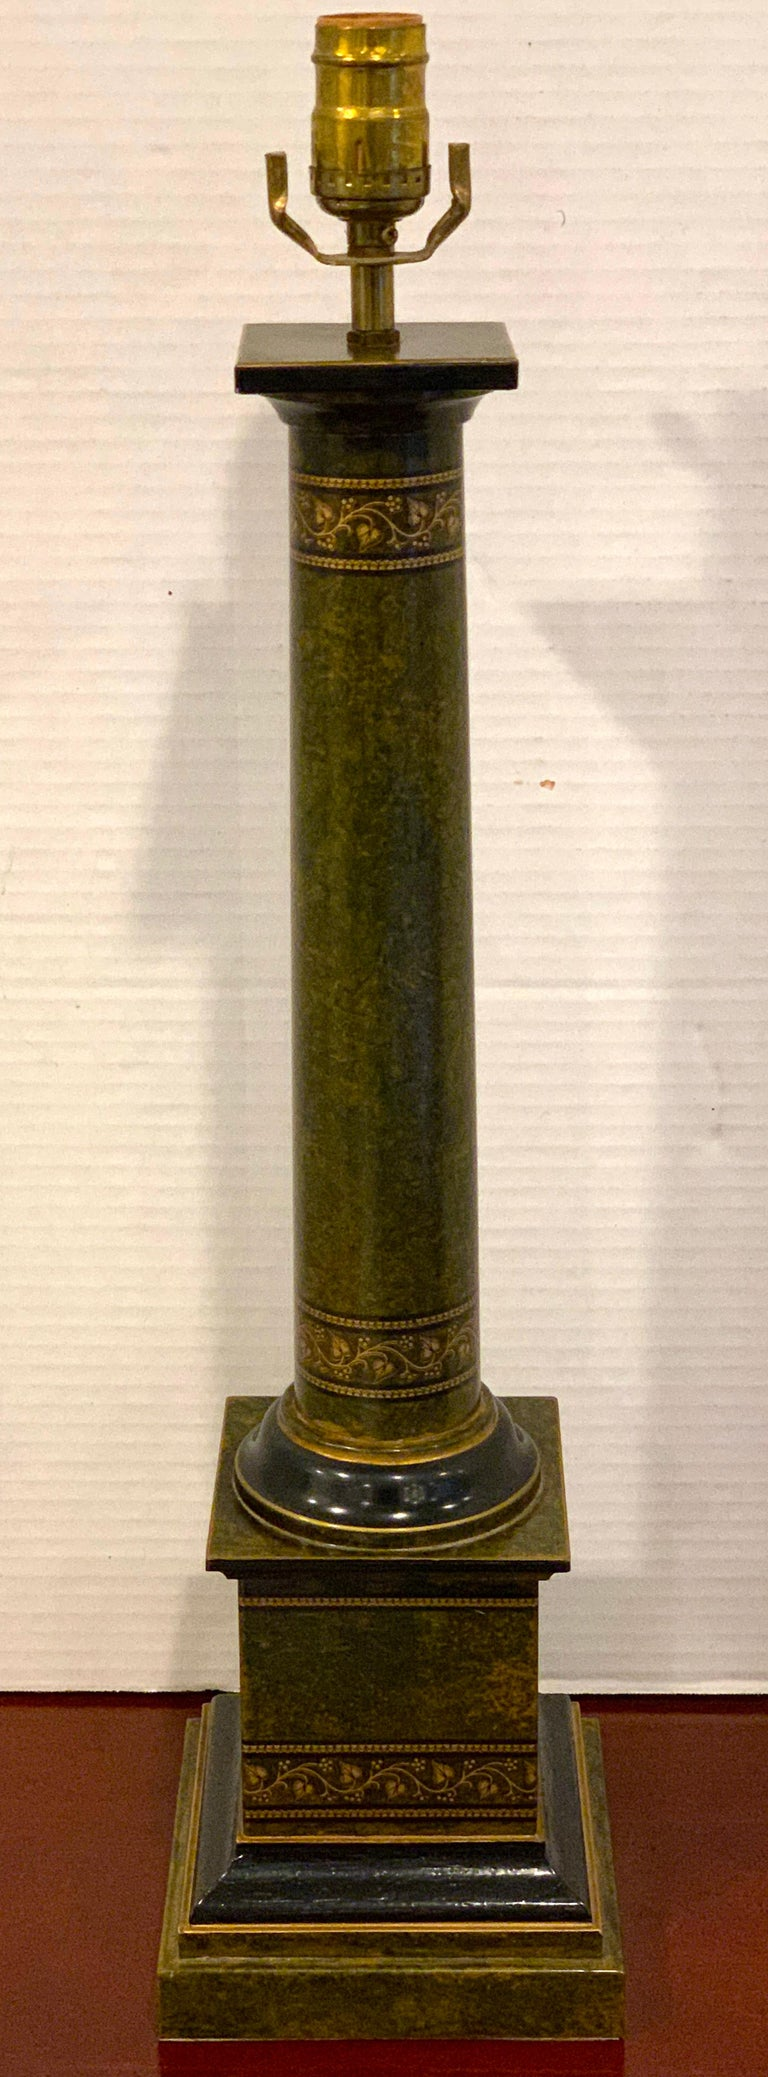 Regency style polychromed tole column lamp, subtly enameled, warm color, ready to place 6